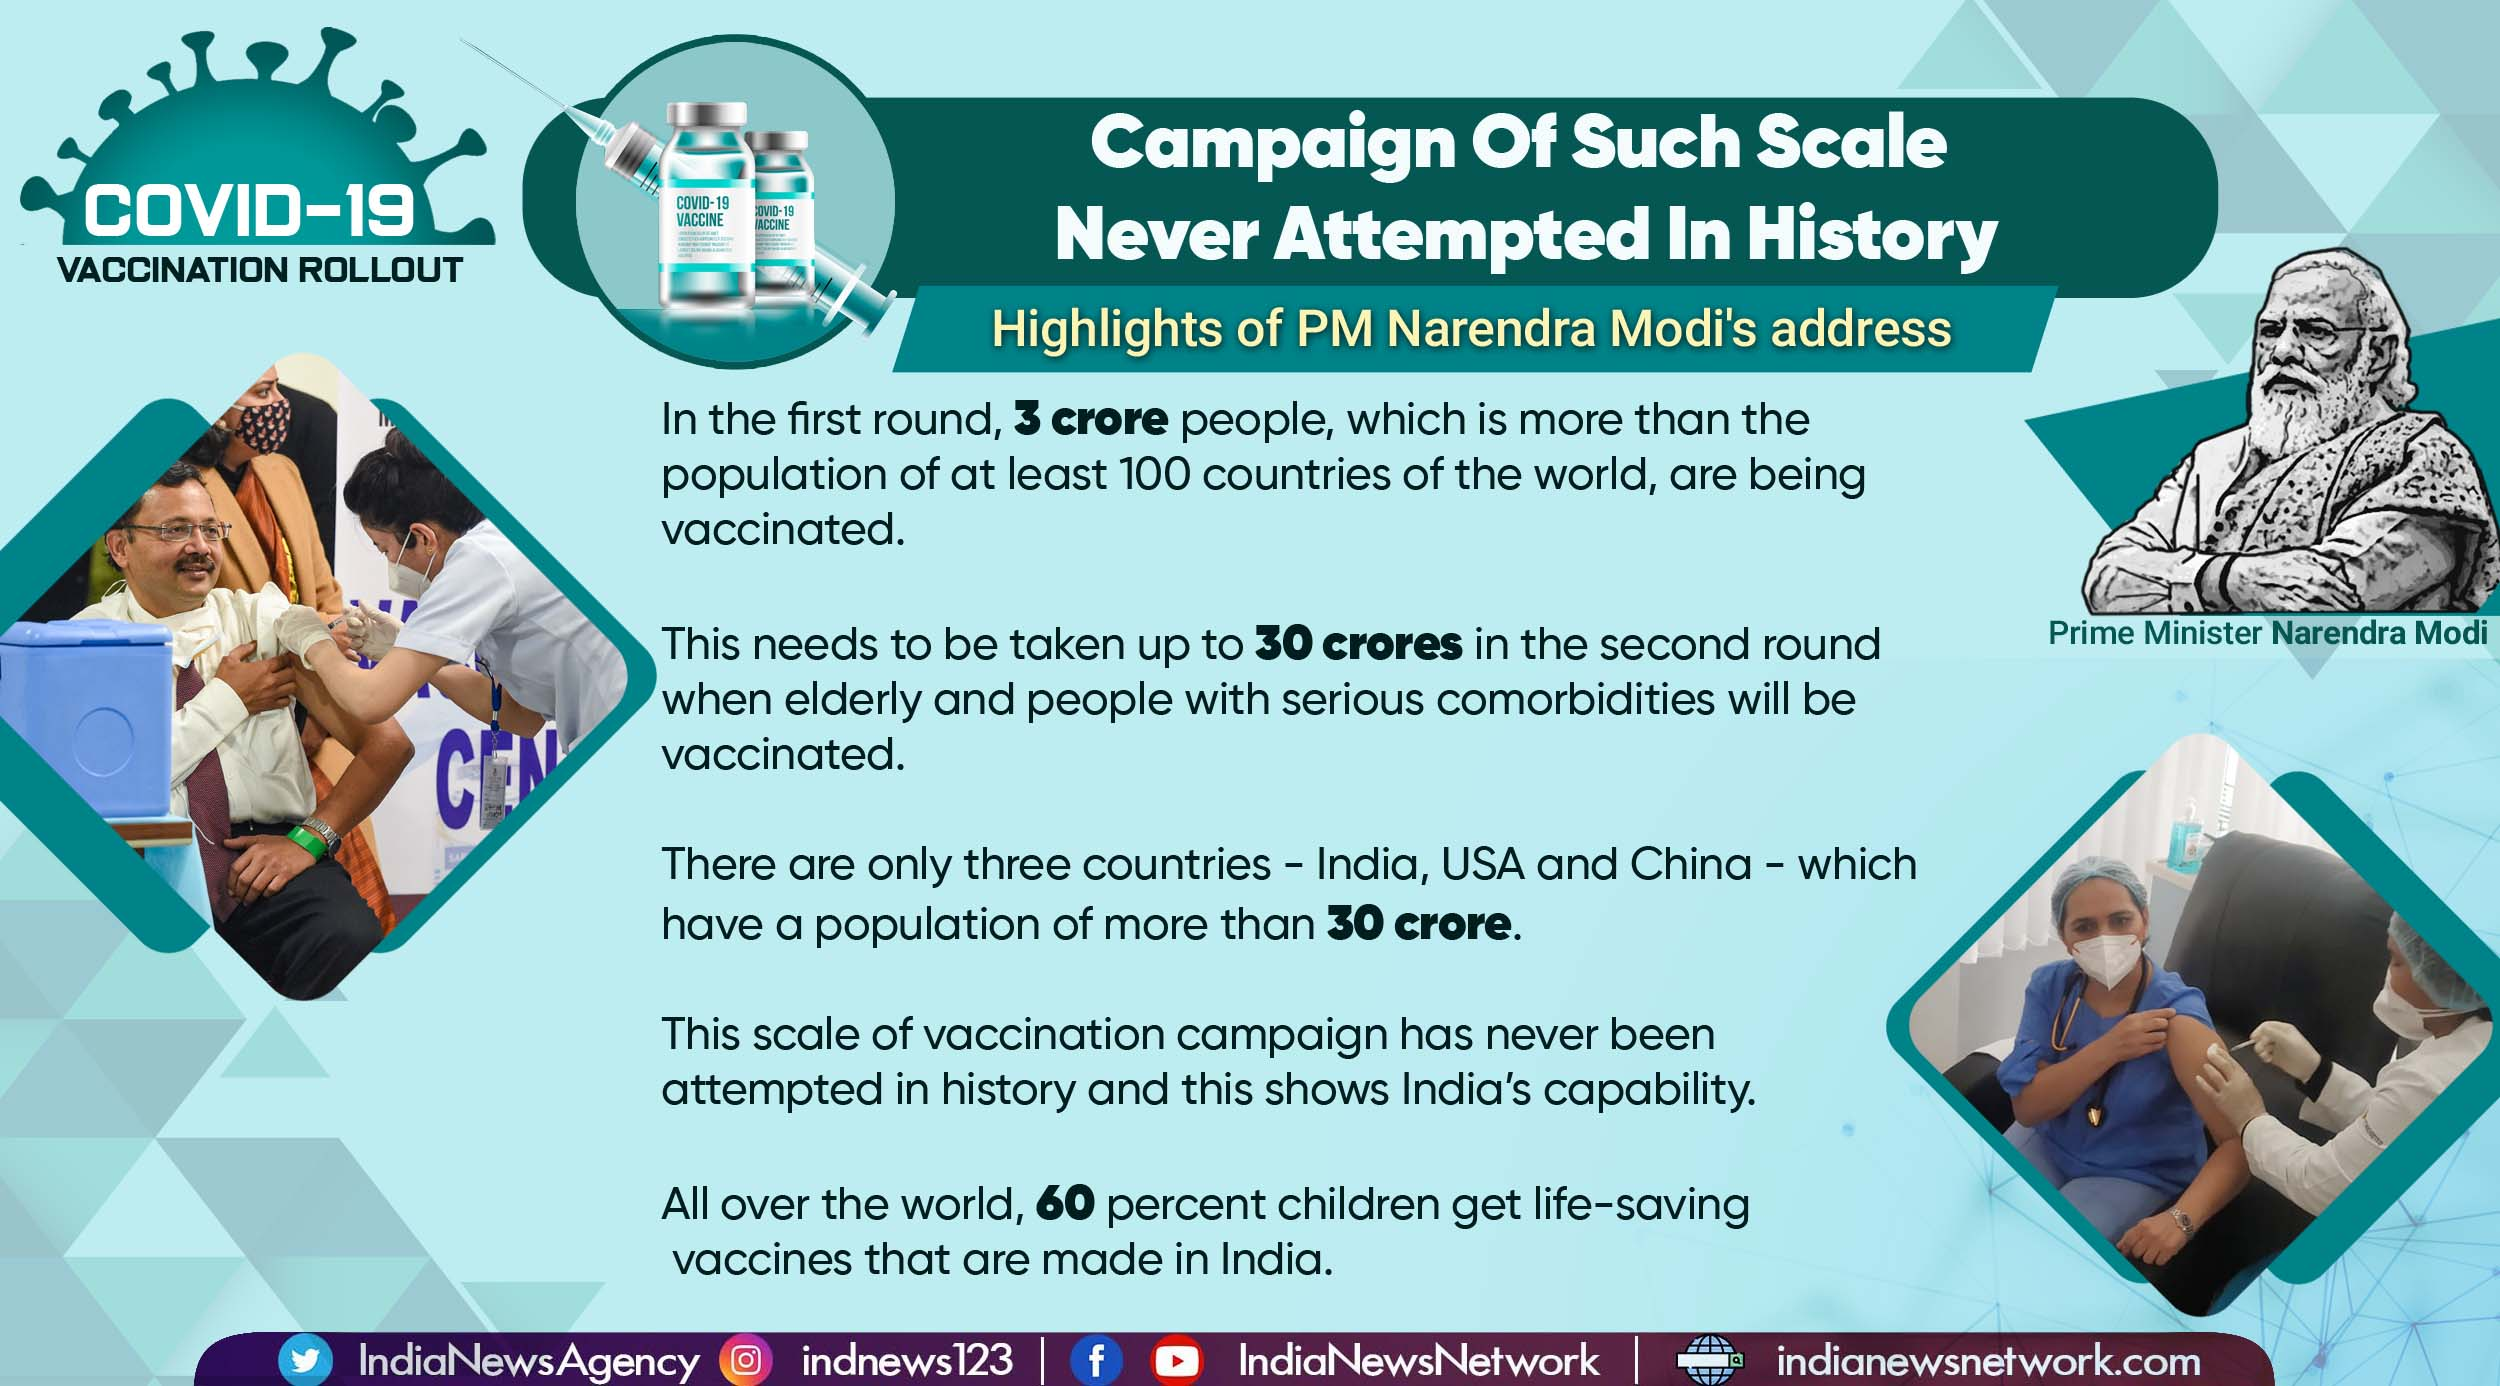 Covid-19 vaccination: What PM Modi said as India launched world's largest campaign